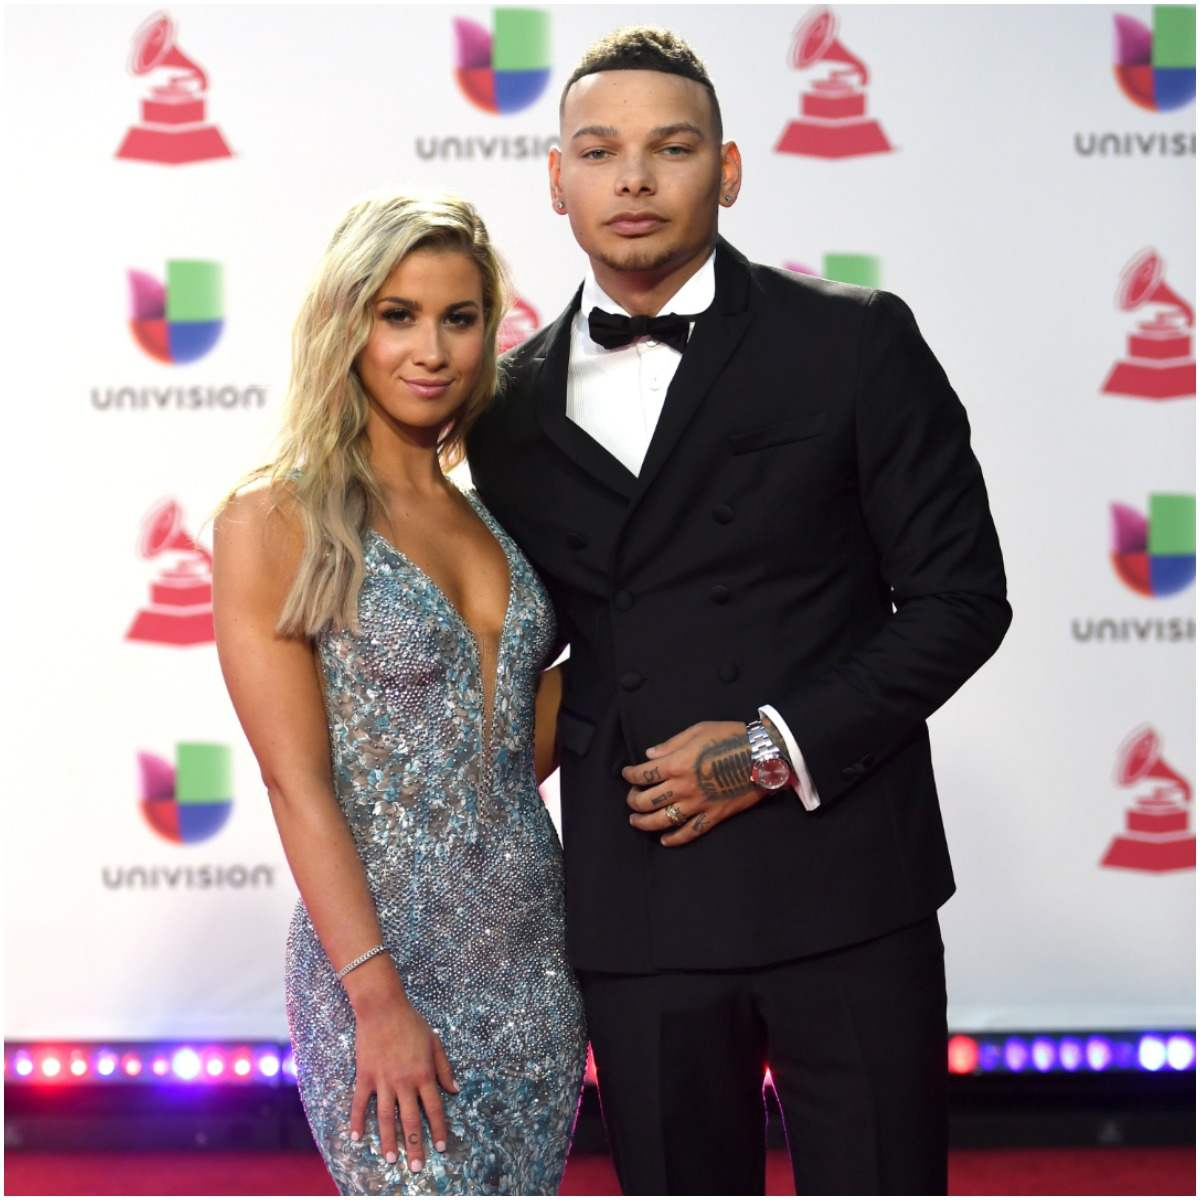 Kane Brown and his wife Katelyn Jae